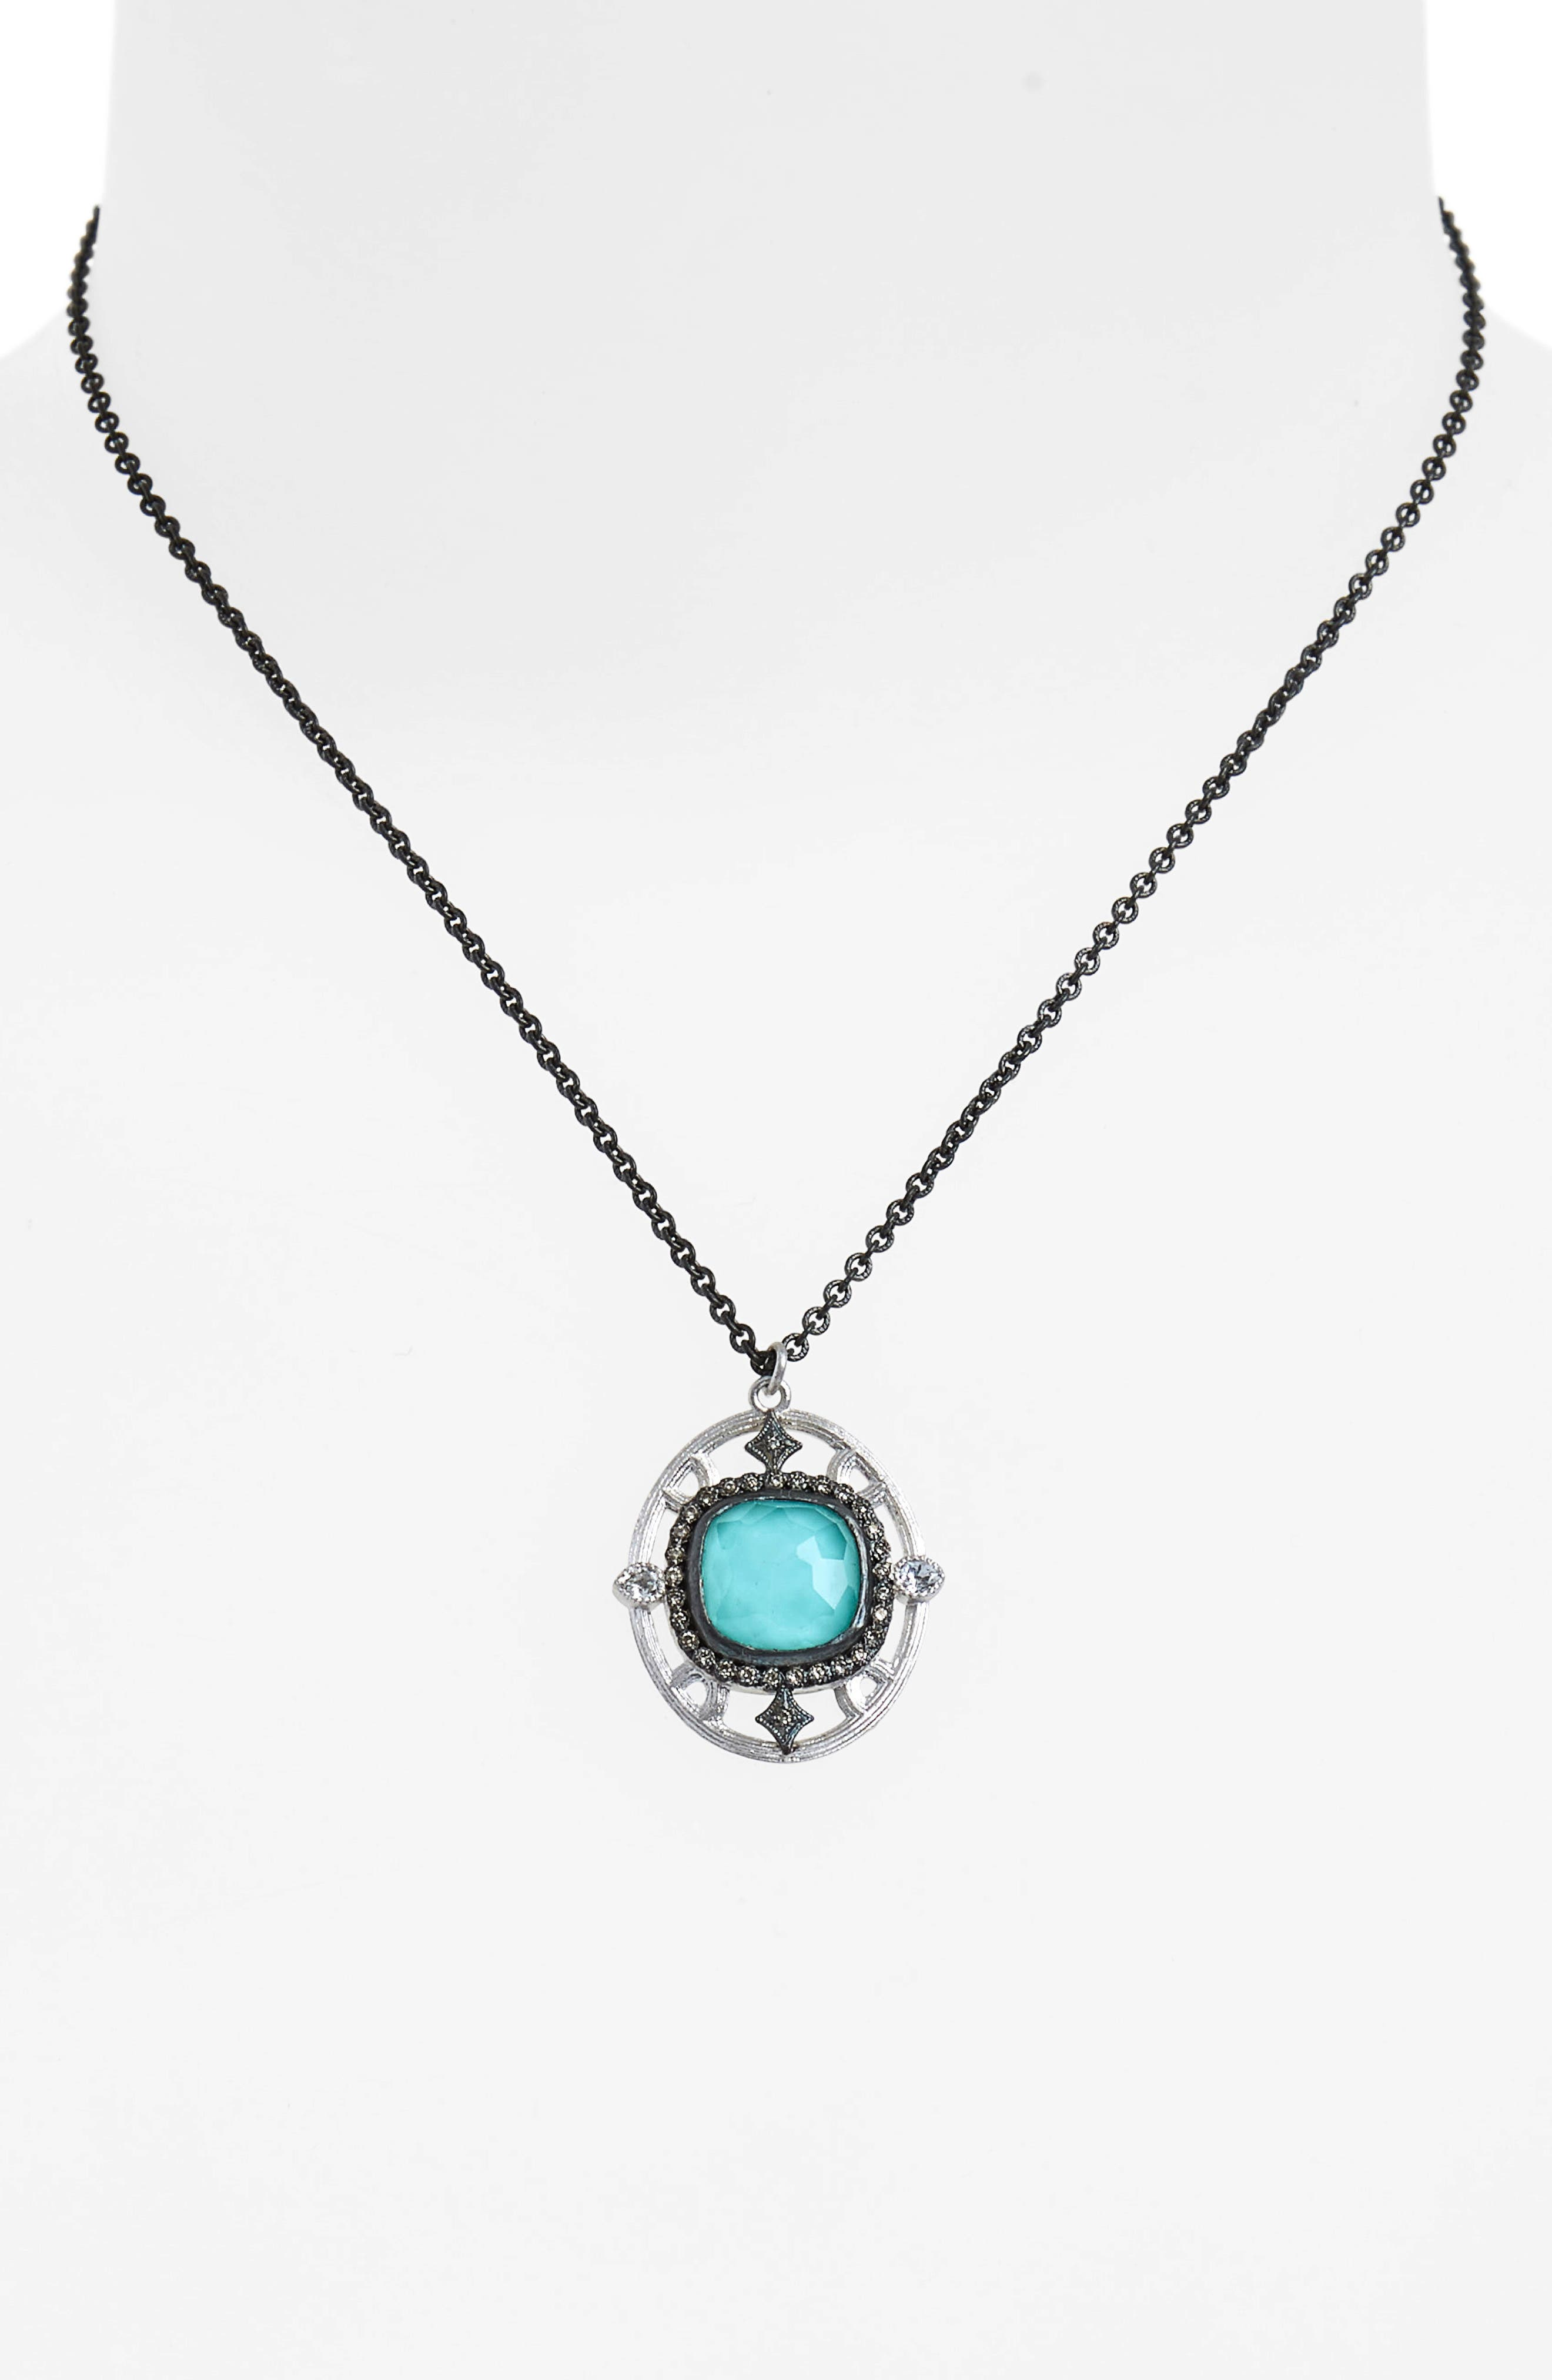 New World Crivelli Oval Drop Pendant Necklace,                             Alternate thumbnail 2, color,                             SILVER/ TURQUOISE